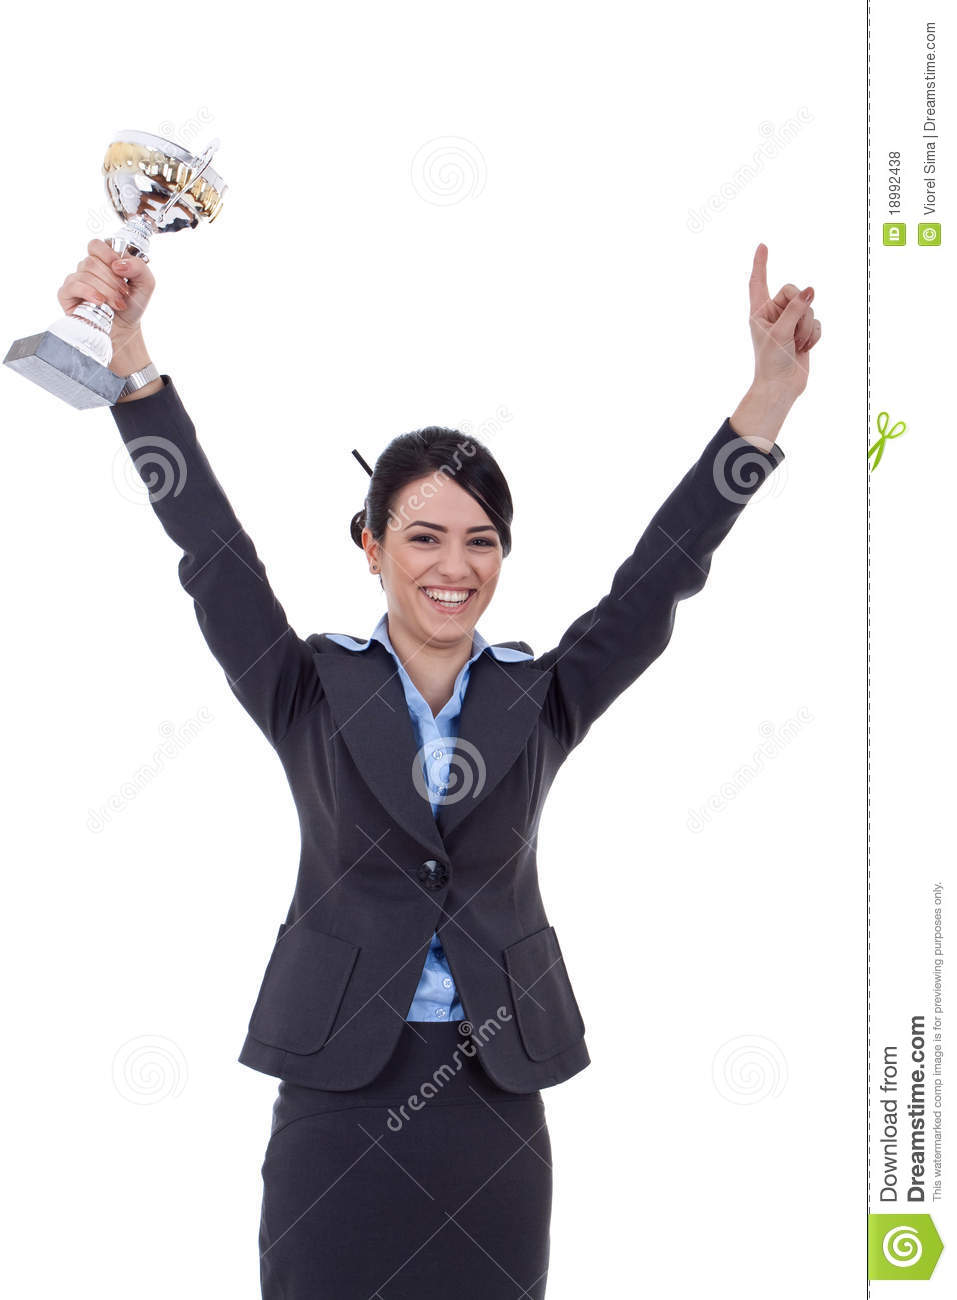 Excited business woman winning a trophy